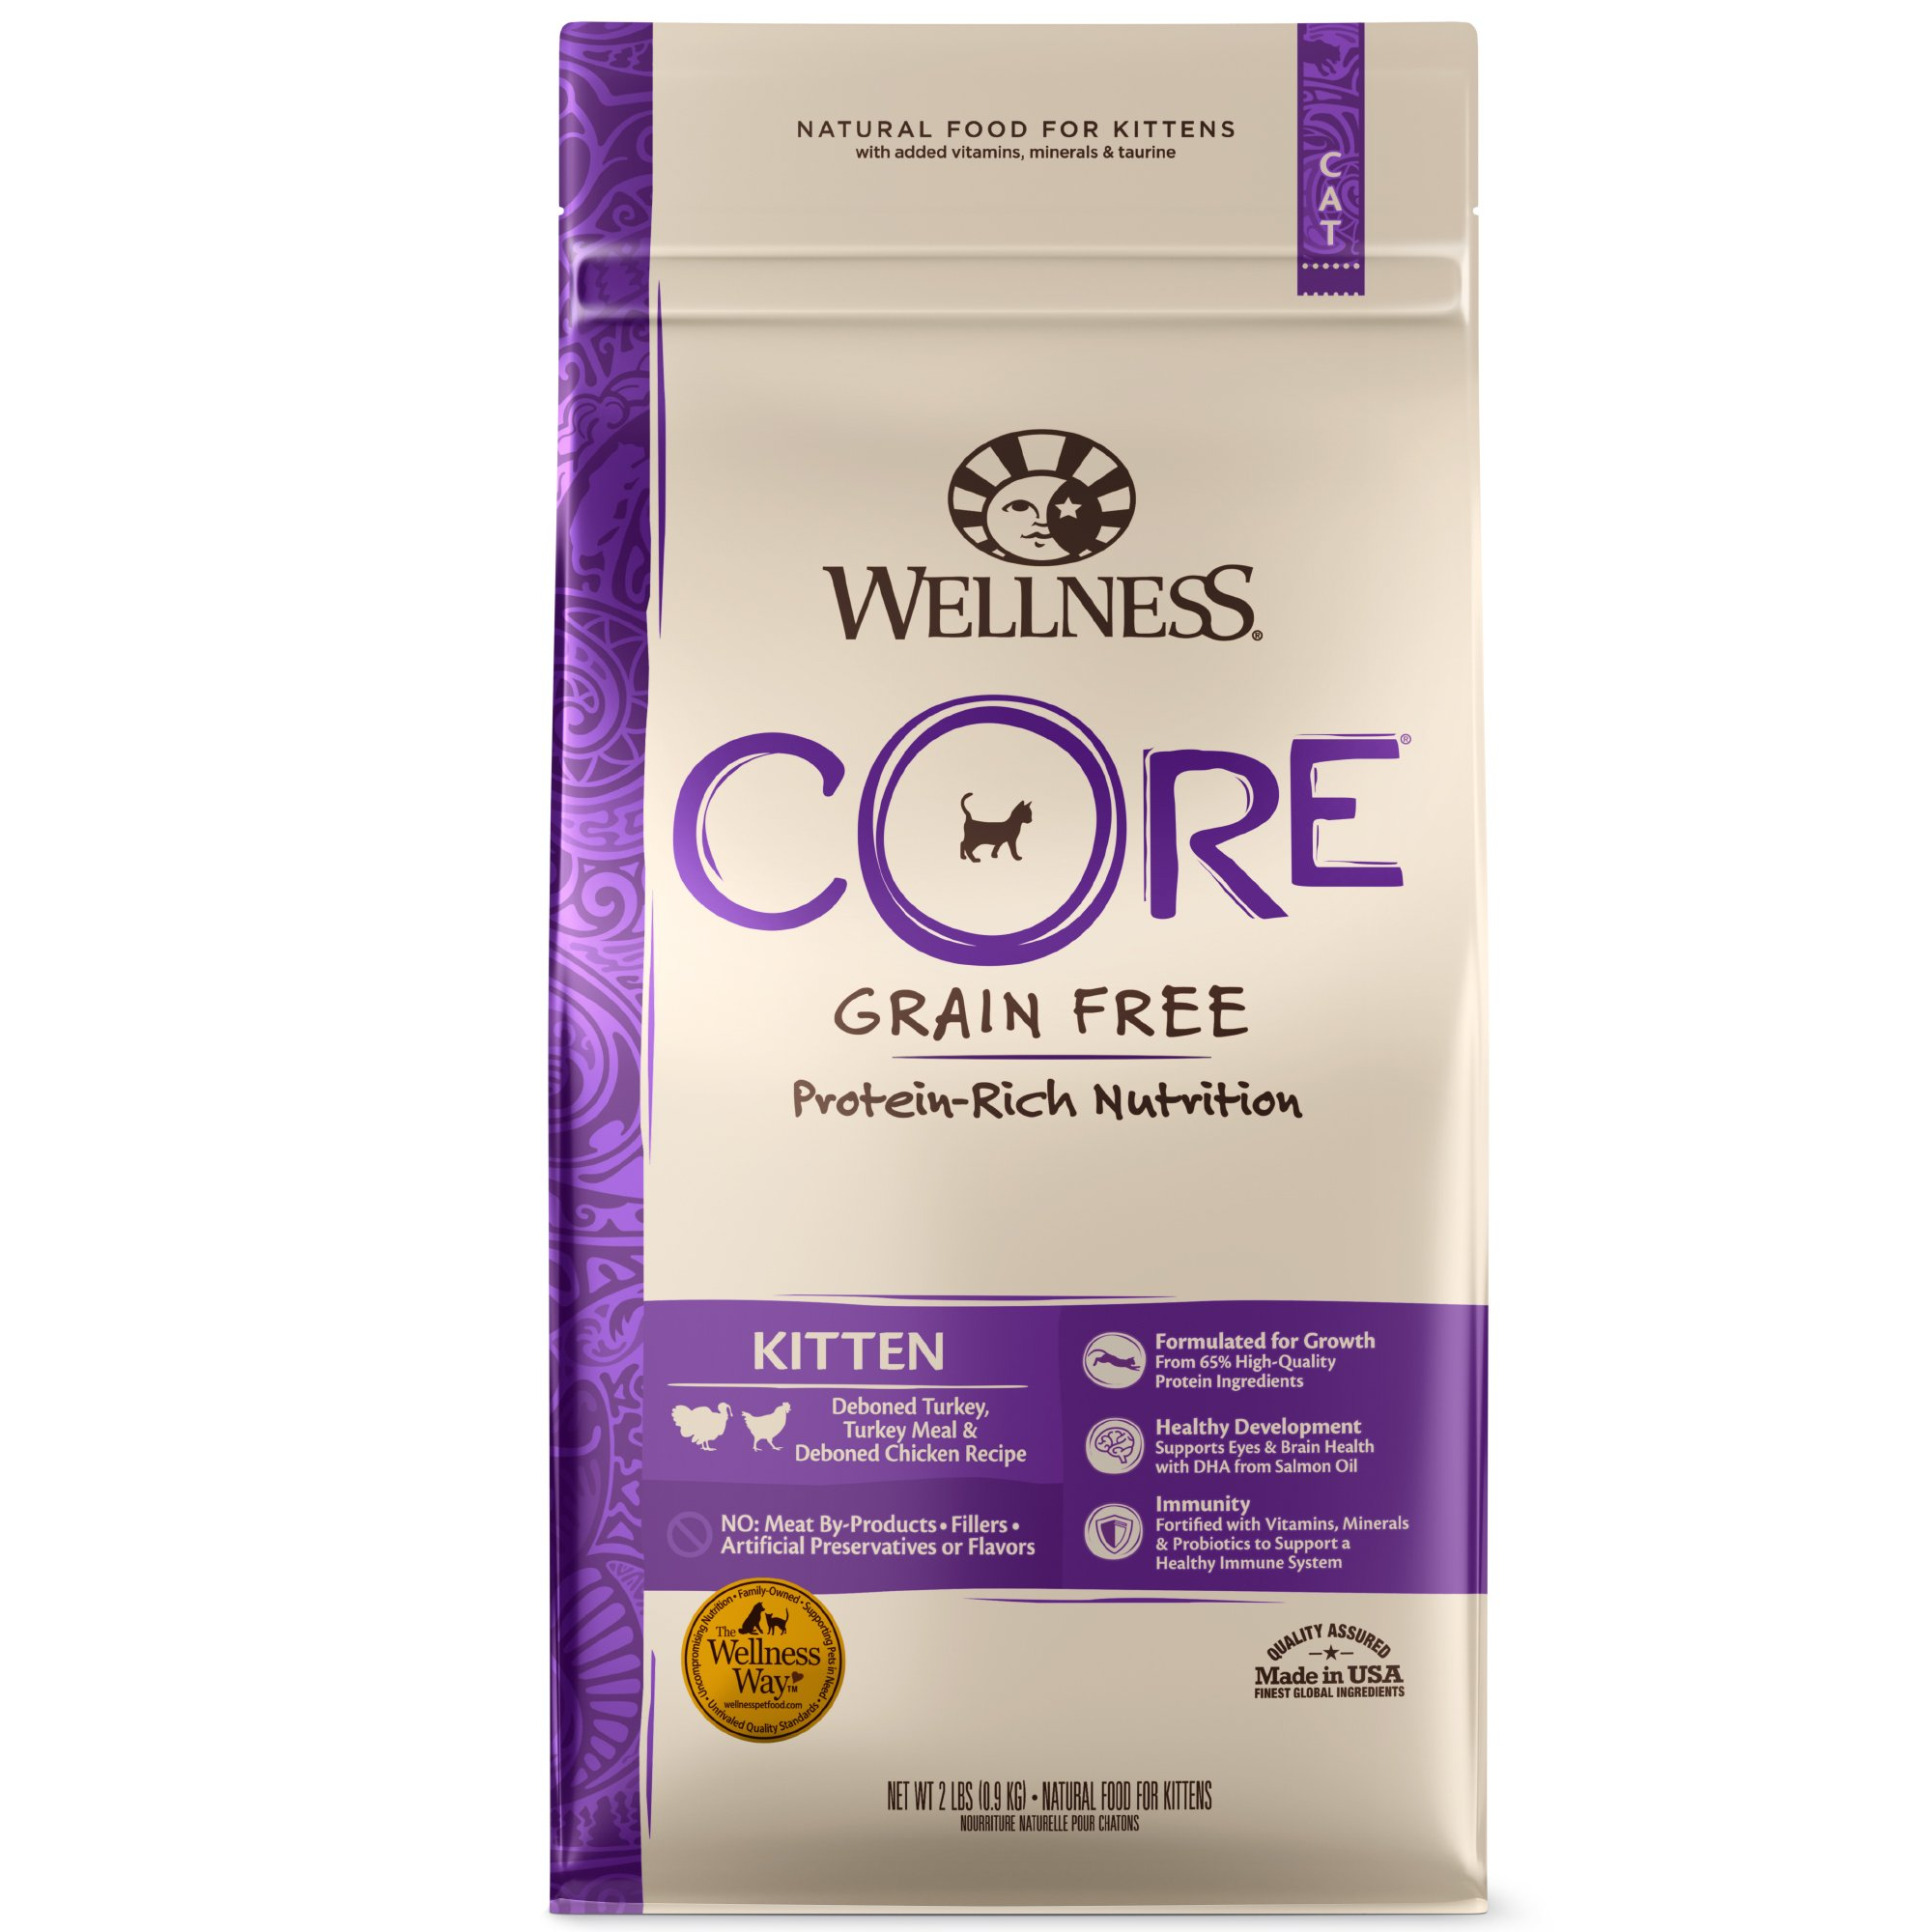 Wellness Core Kitten Food Petco Store